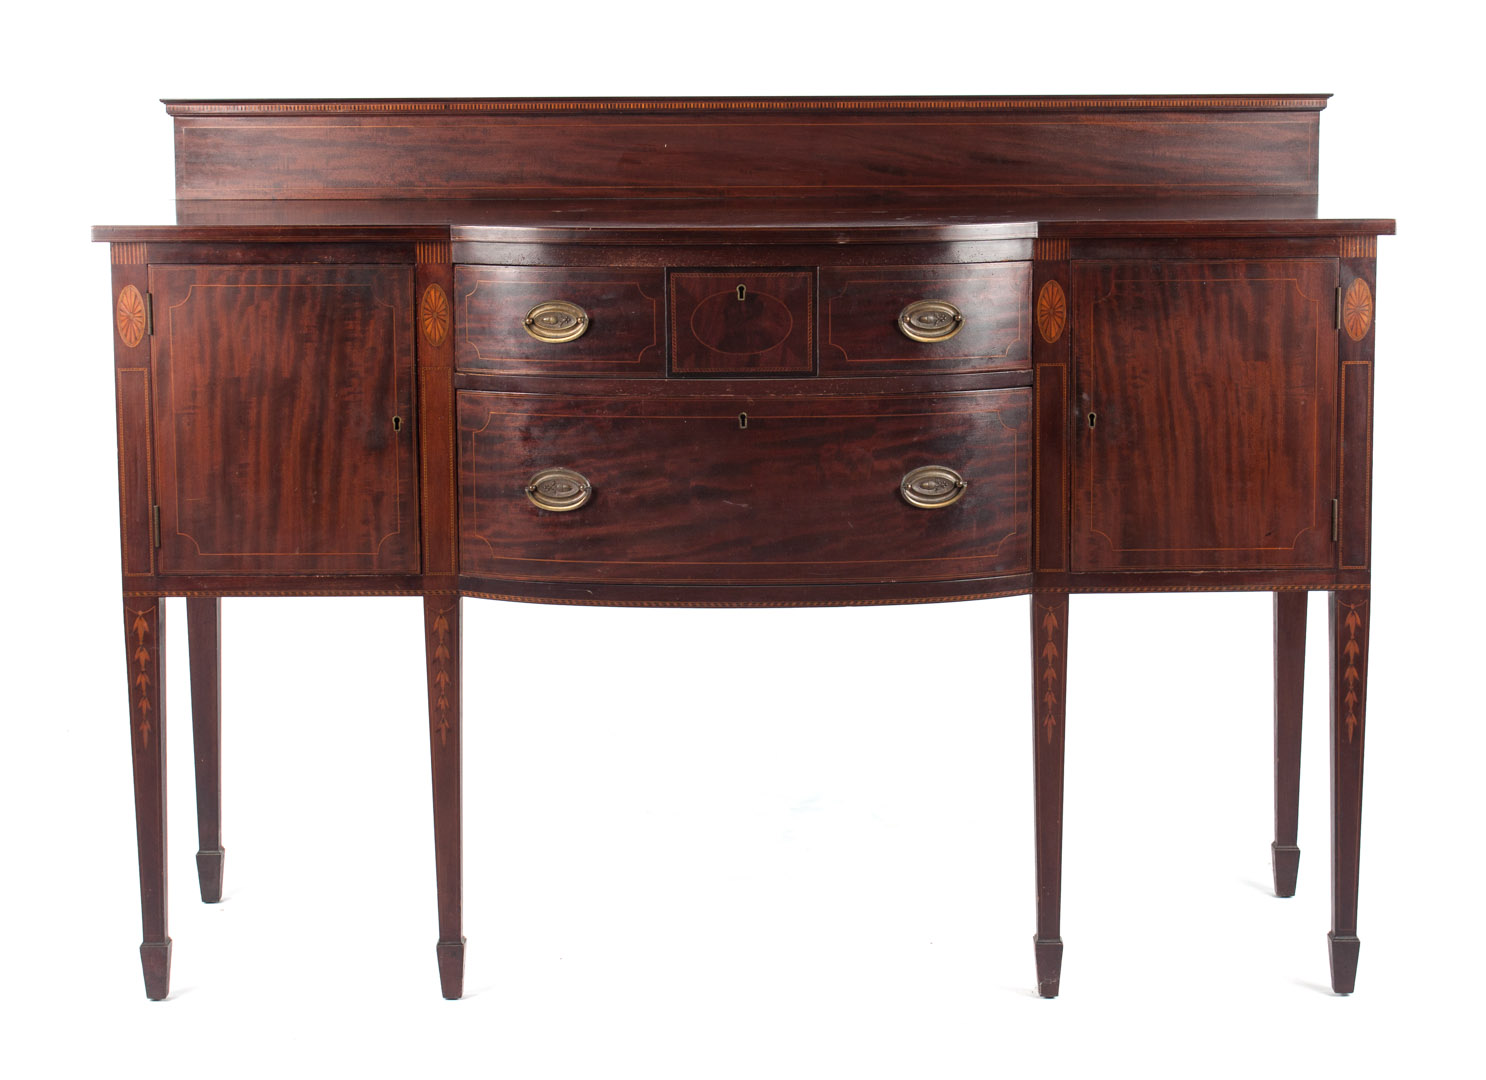 Potthast Bros. Federal style mahogany sideboard